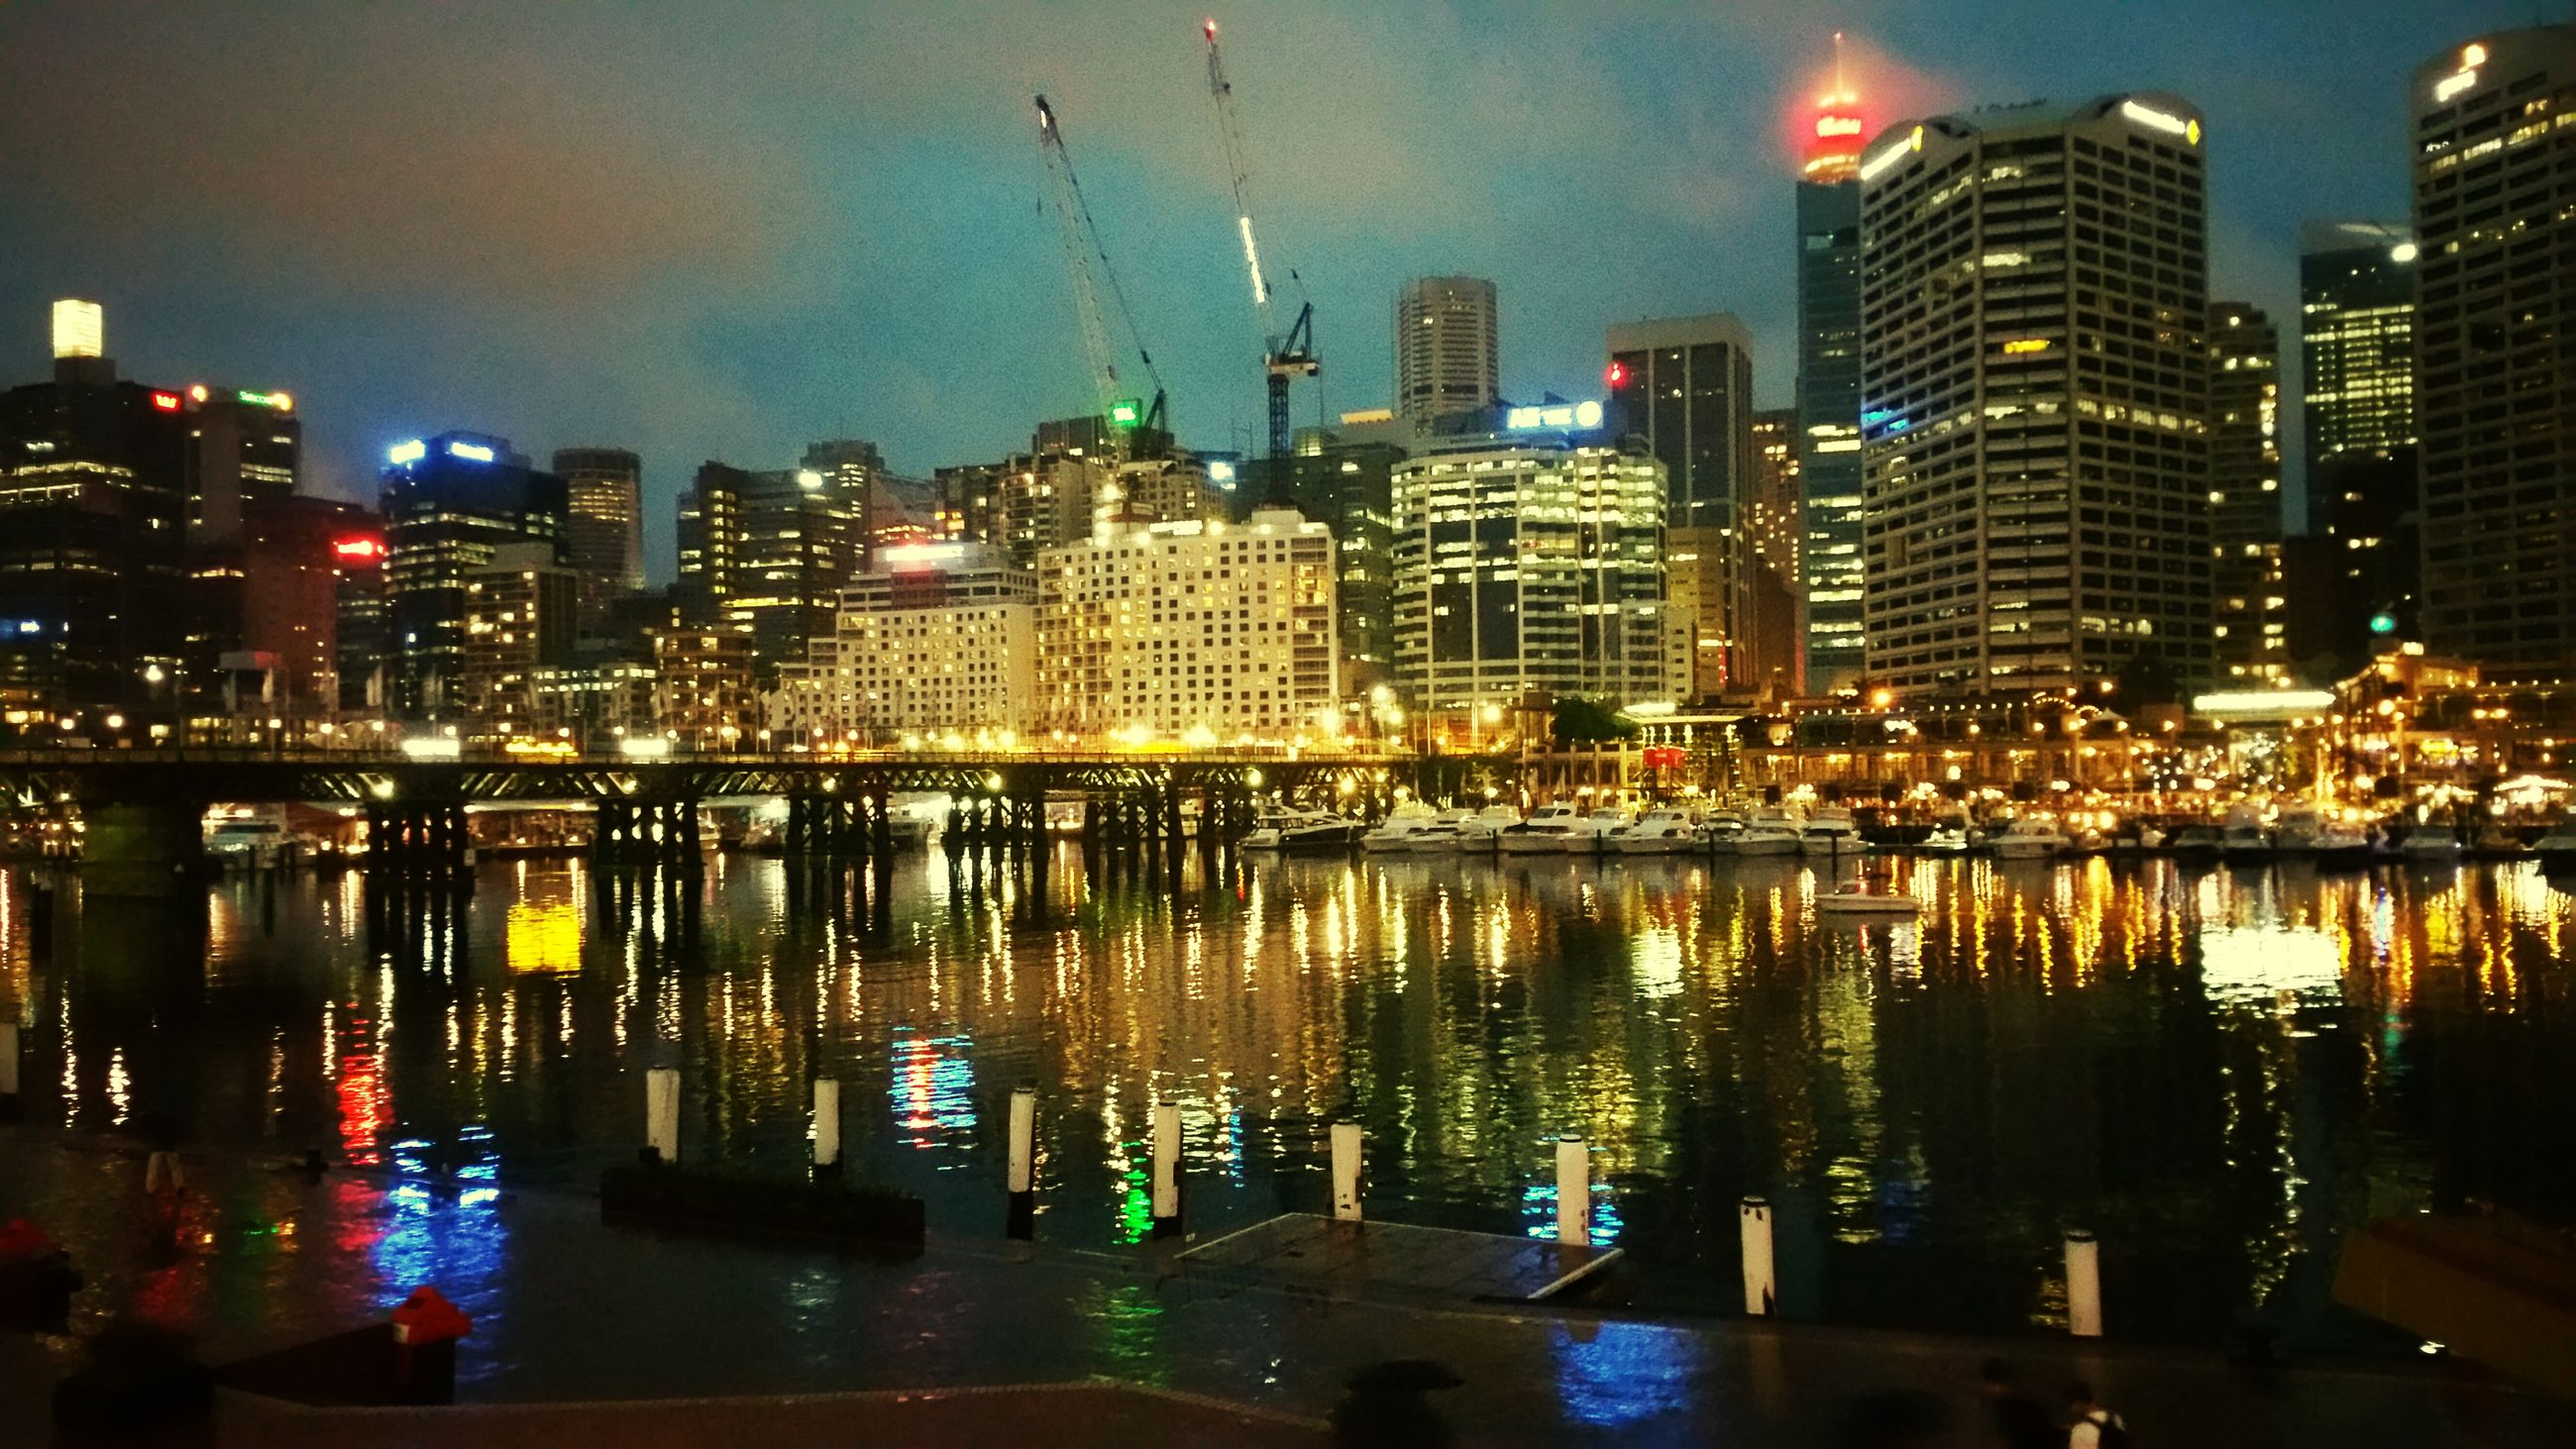 illuminated, city, building exterior, night, skyscraper, water, architecture, built structure, reflection, cityscape, waterfront, modern, urban skyline, river, office building, financial district, tall - high, tower, skyline, sky